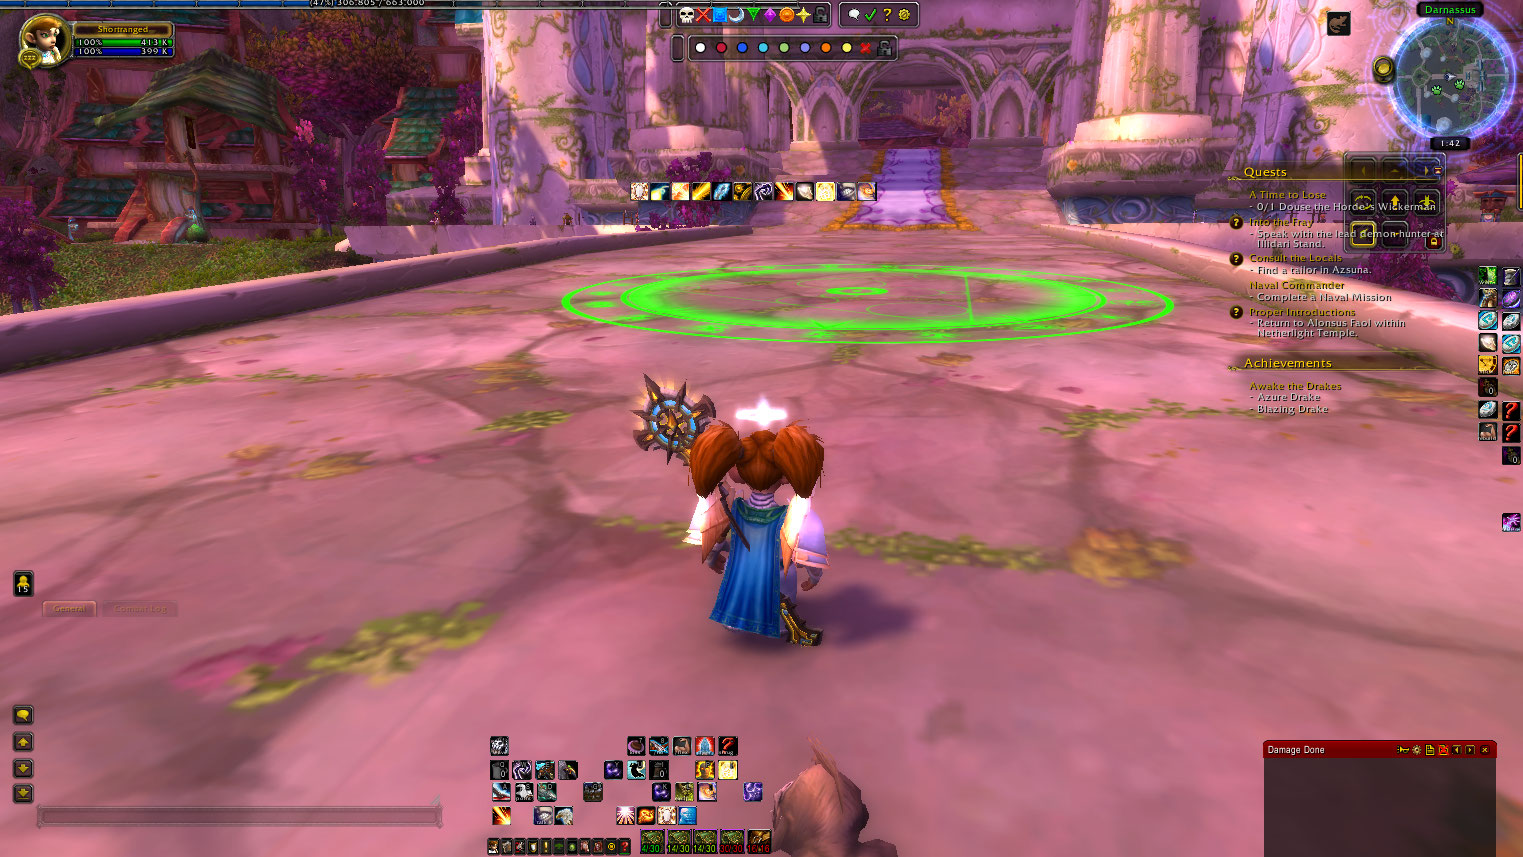 targeted-area-macros-to-help-disabled-gamers-world-of-warcraft-example.png